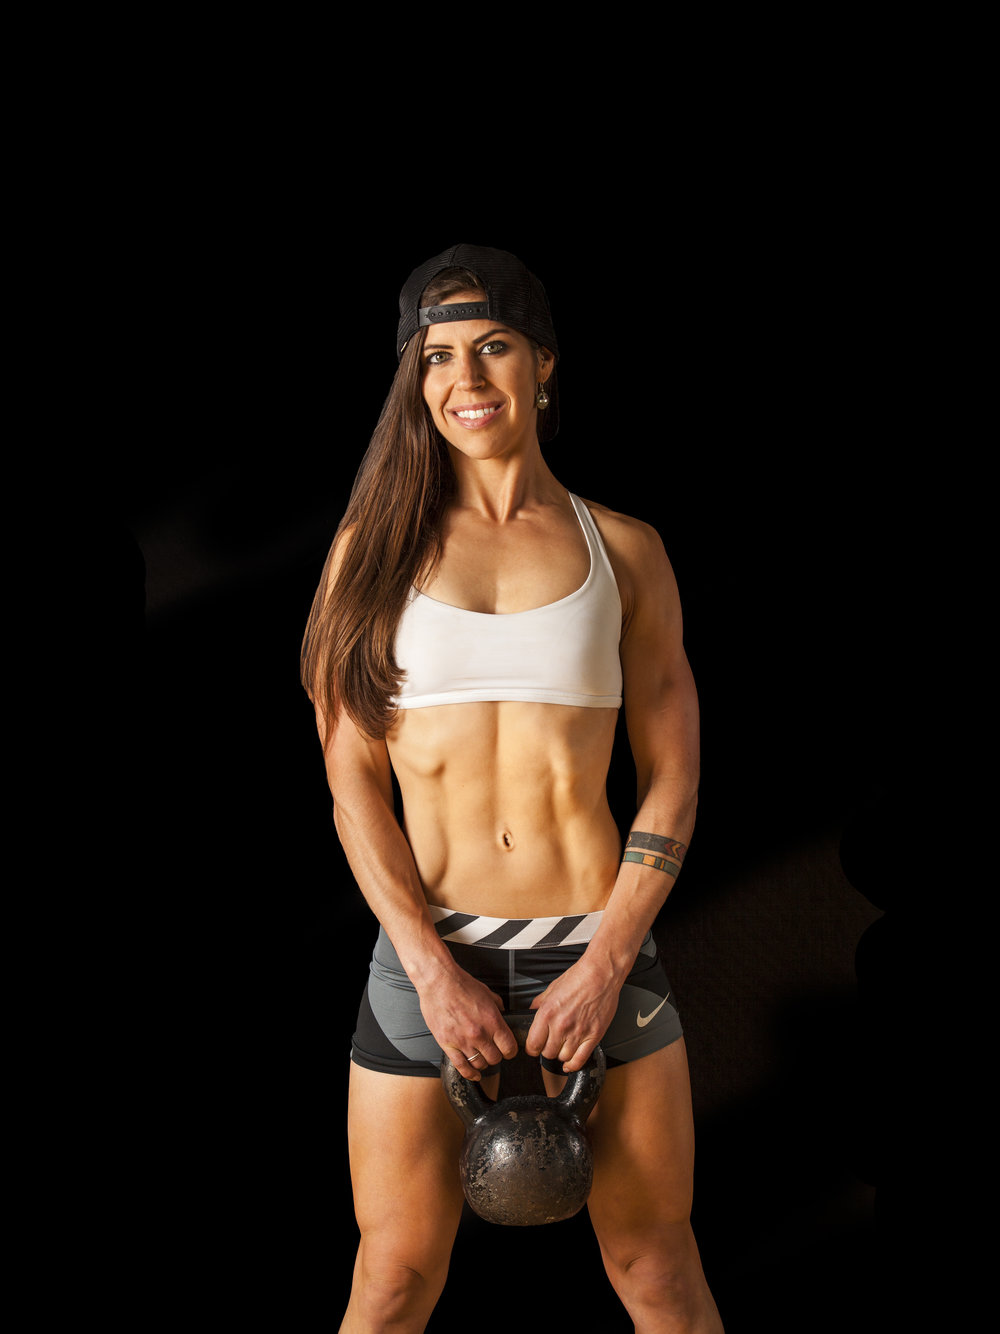 Krista Bodybuilding 6202 full edit for print--3.jpg